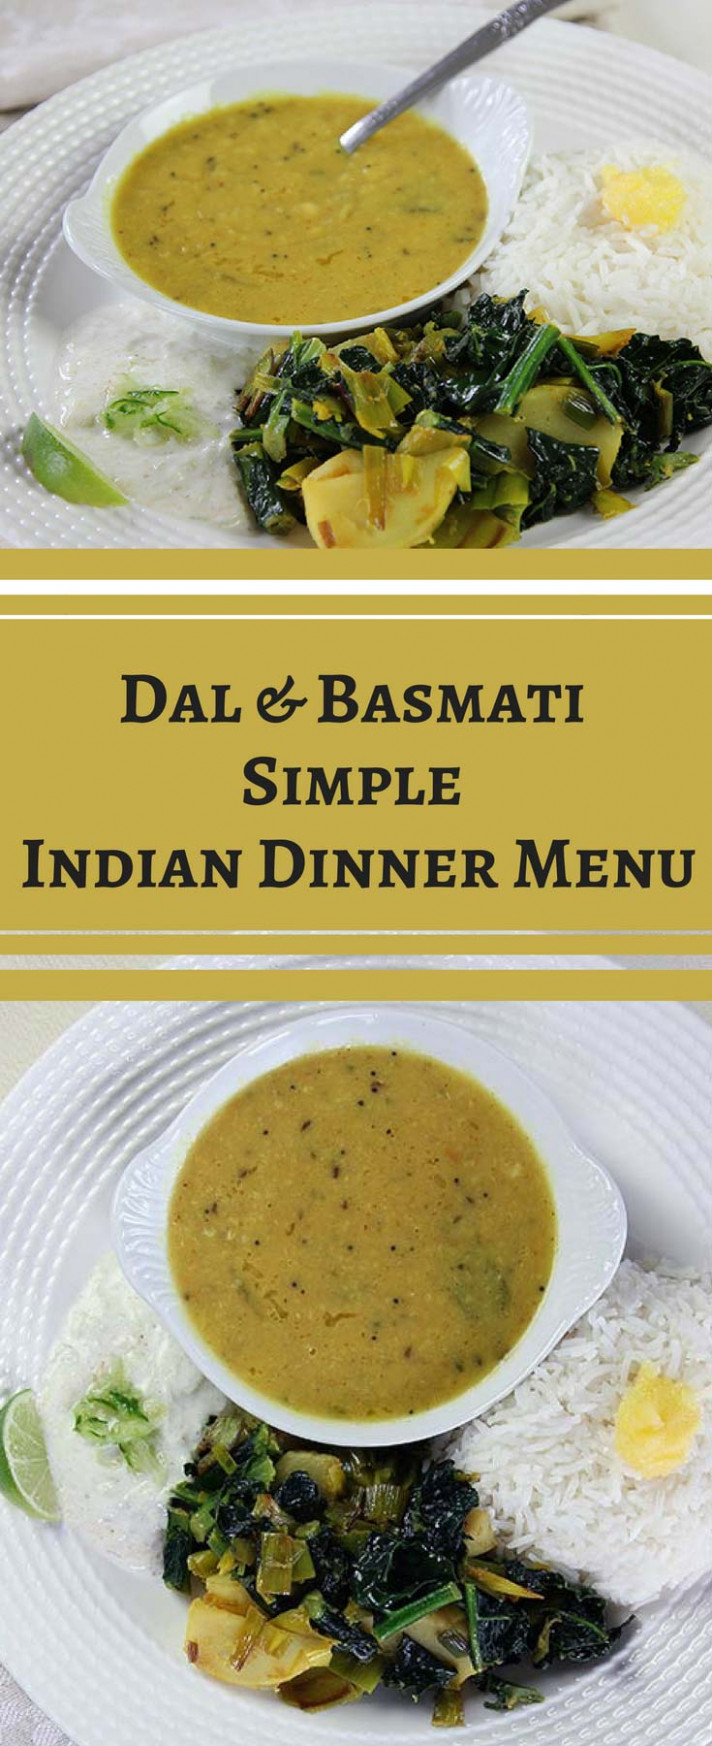 Simple Indian Dinner Menu: Dal And Basmati Rice – Buttered Veg